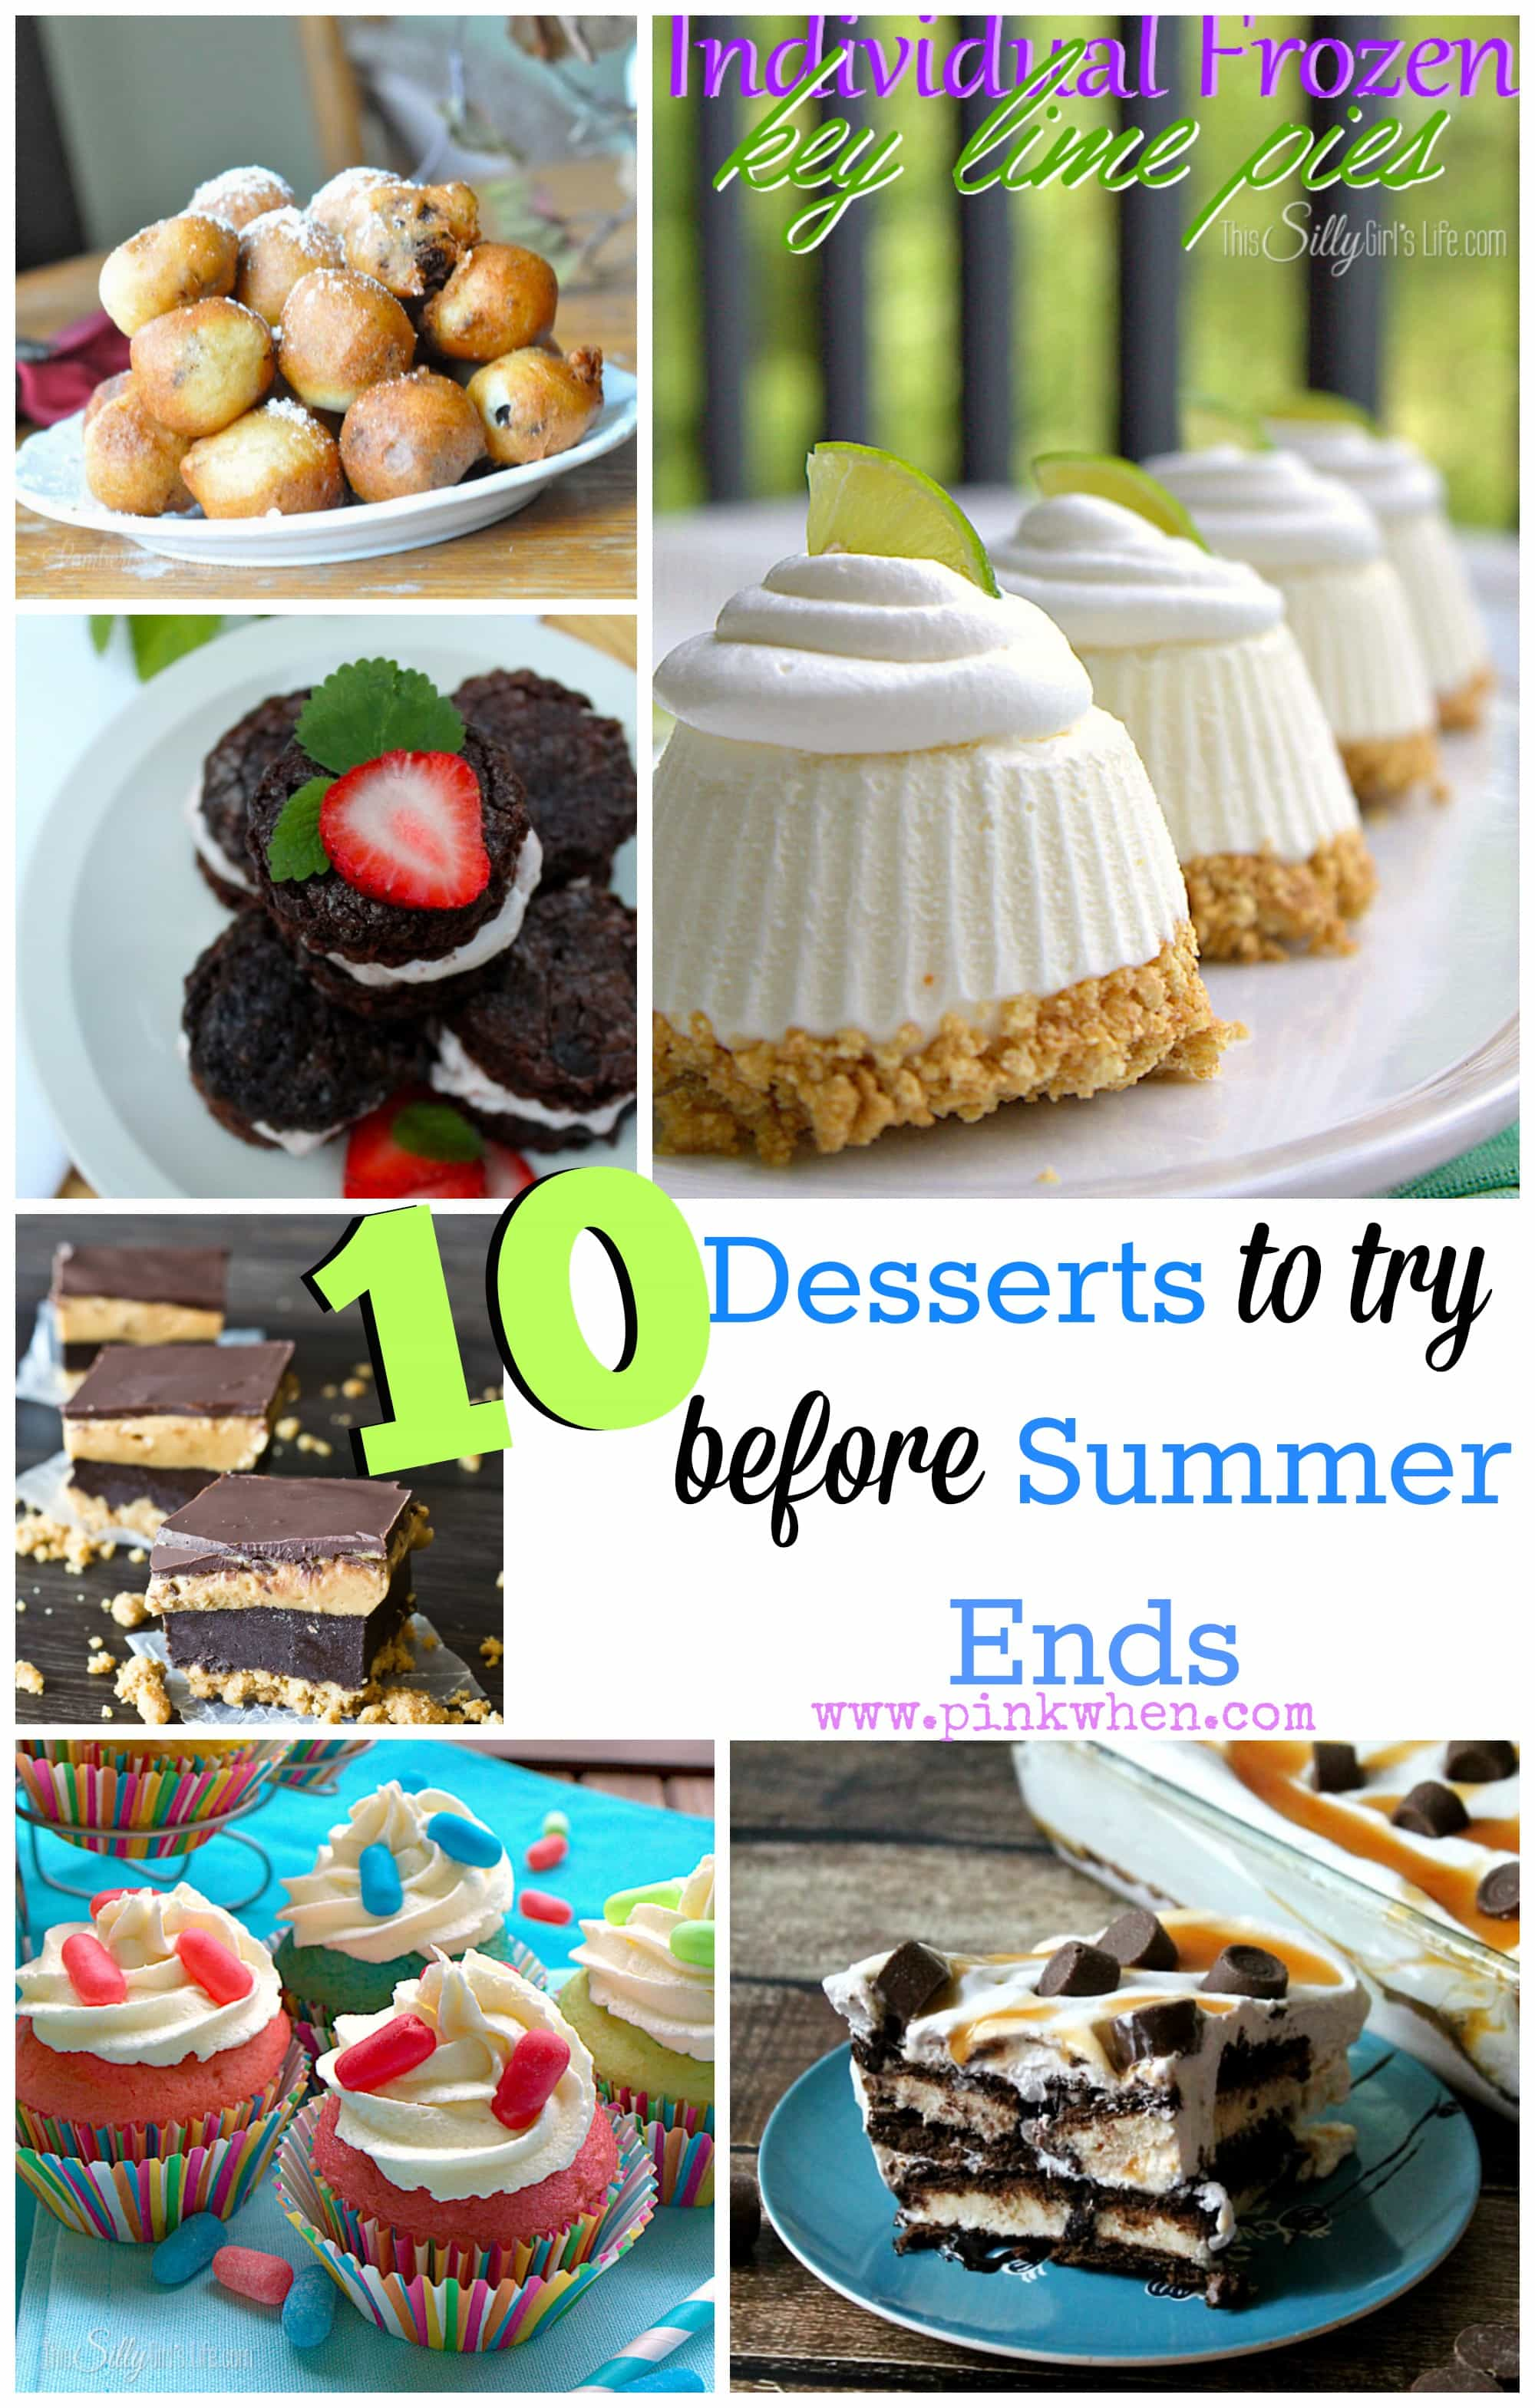 10 Desserts to Try Before Summer Ends via PinkWhen.com